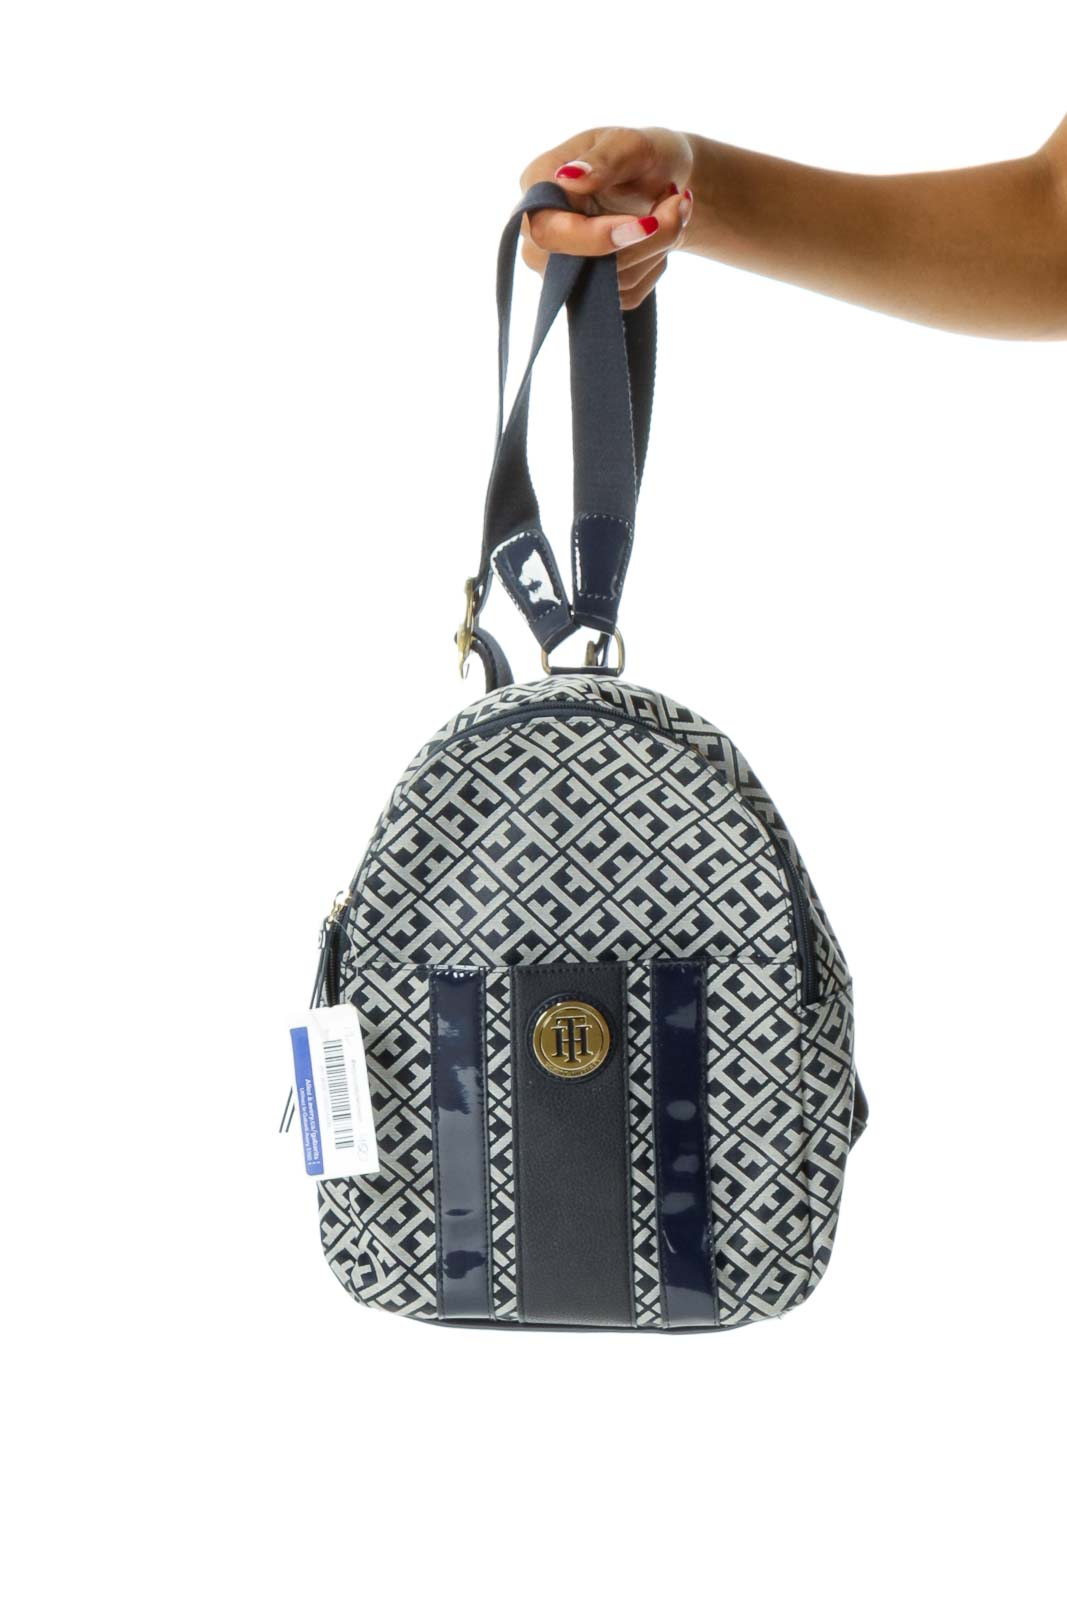 Navy Blue White Monogrammed Knit Zippered Medium Size Backpack